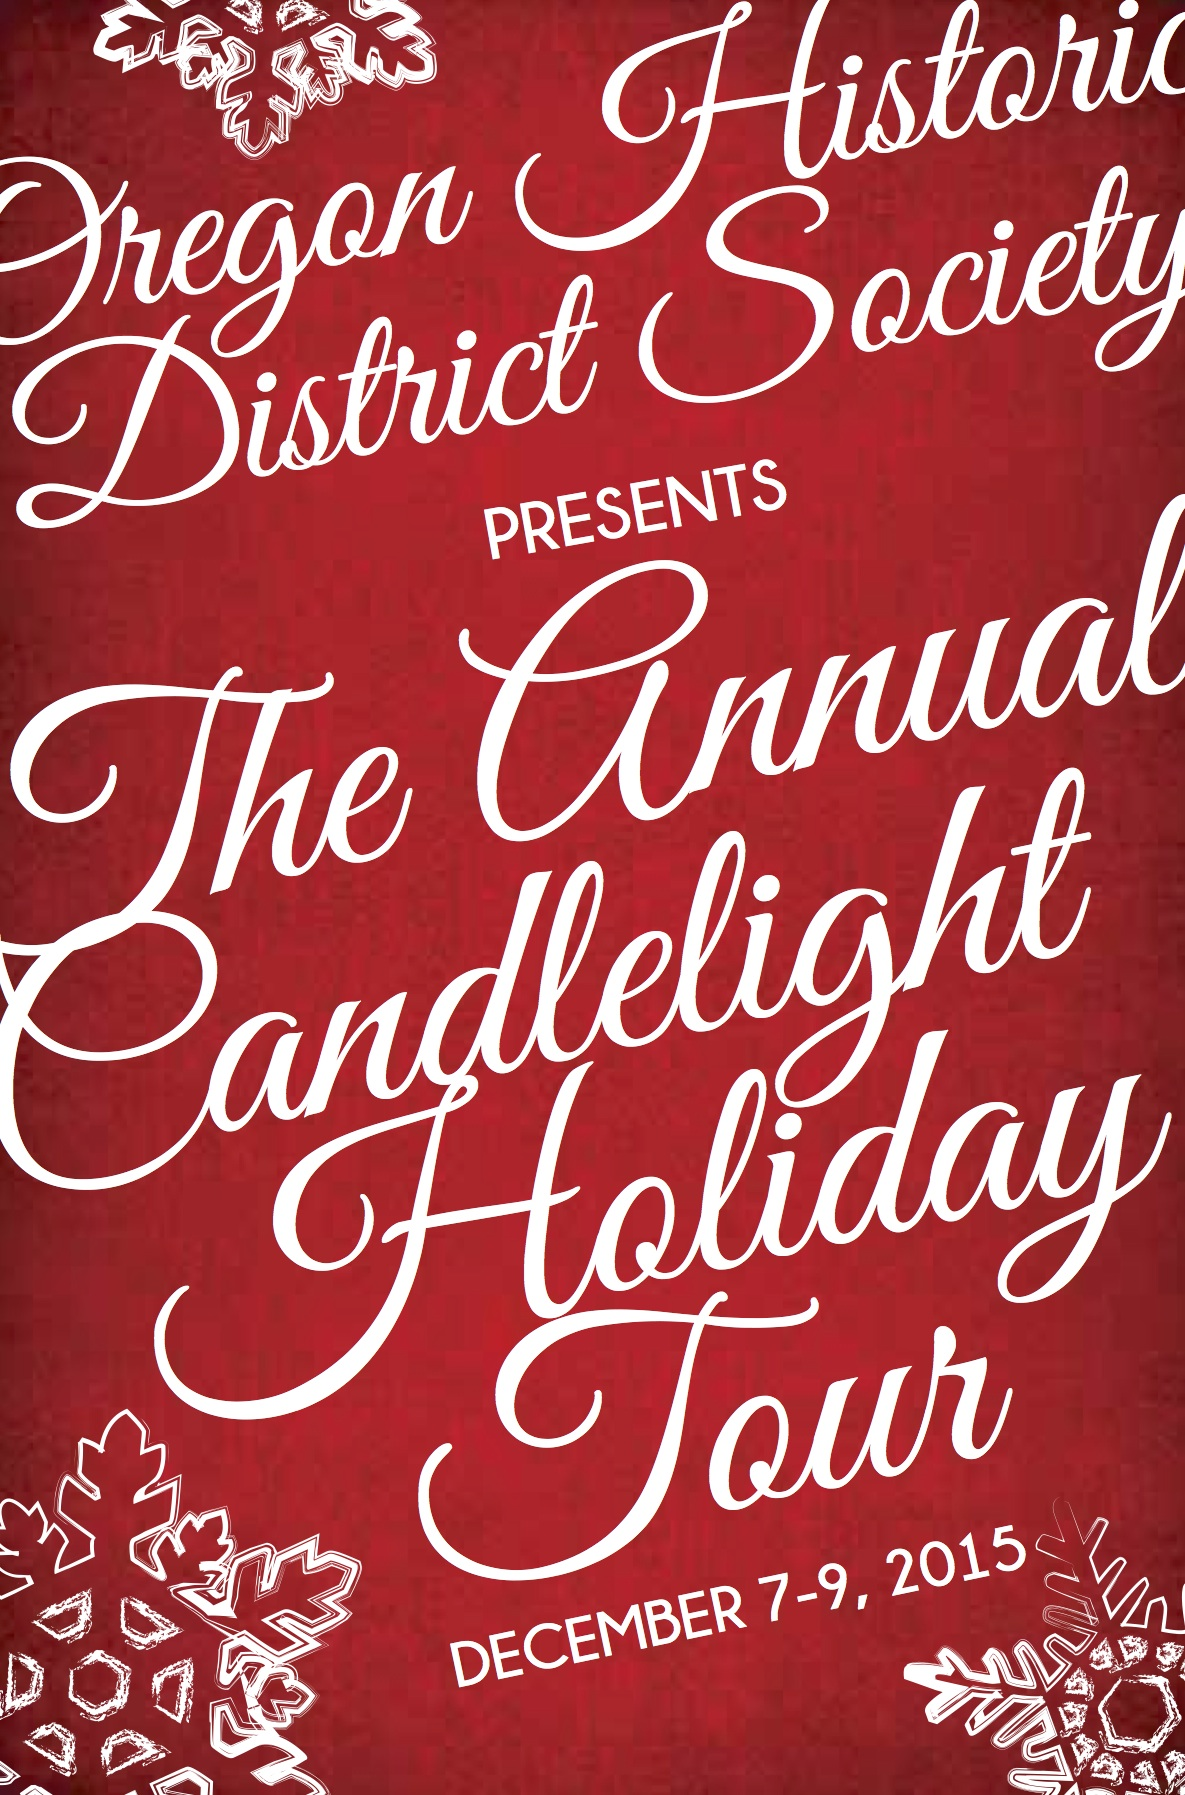 OHDS Candlelight Tour Invites 2 - Low Res.jpg